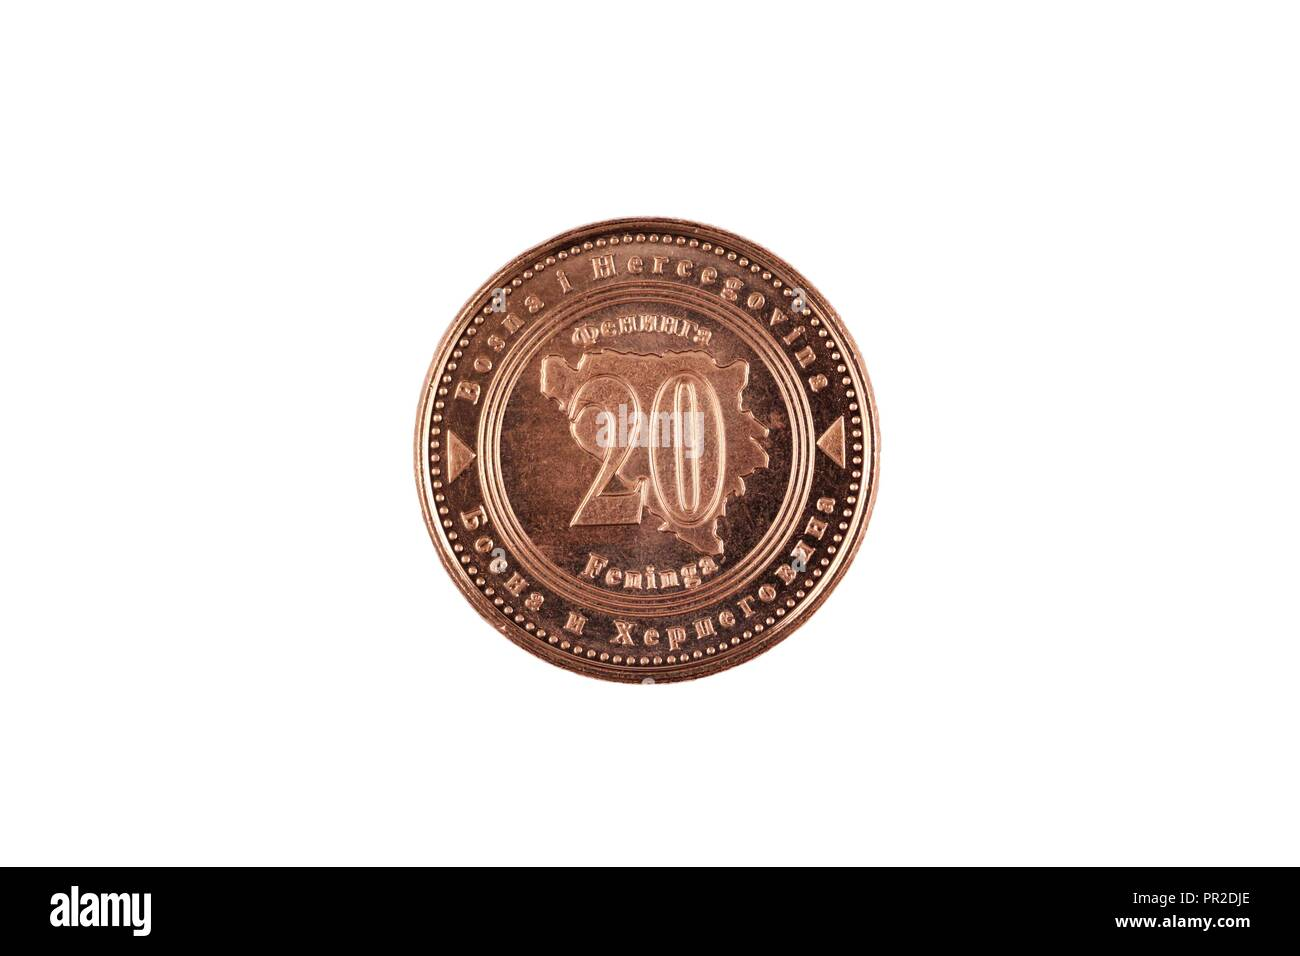 A macro image of a Bosnian 20 fenings coin isolated on a white background - Stock Image